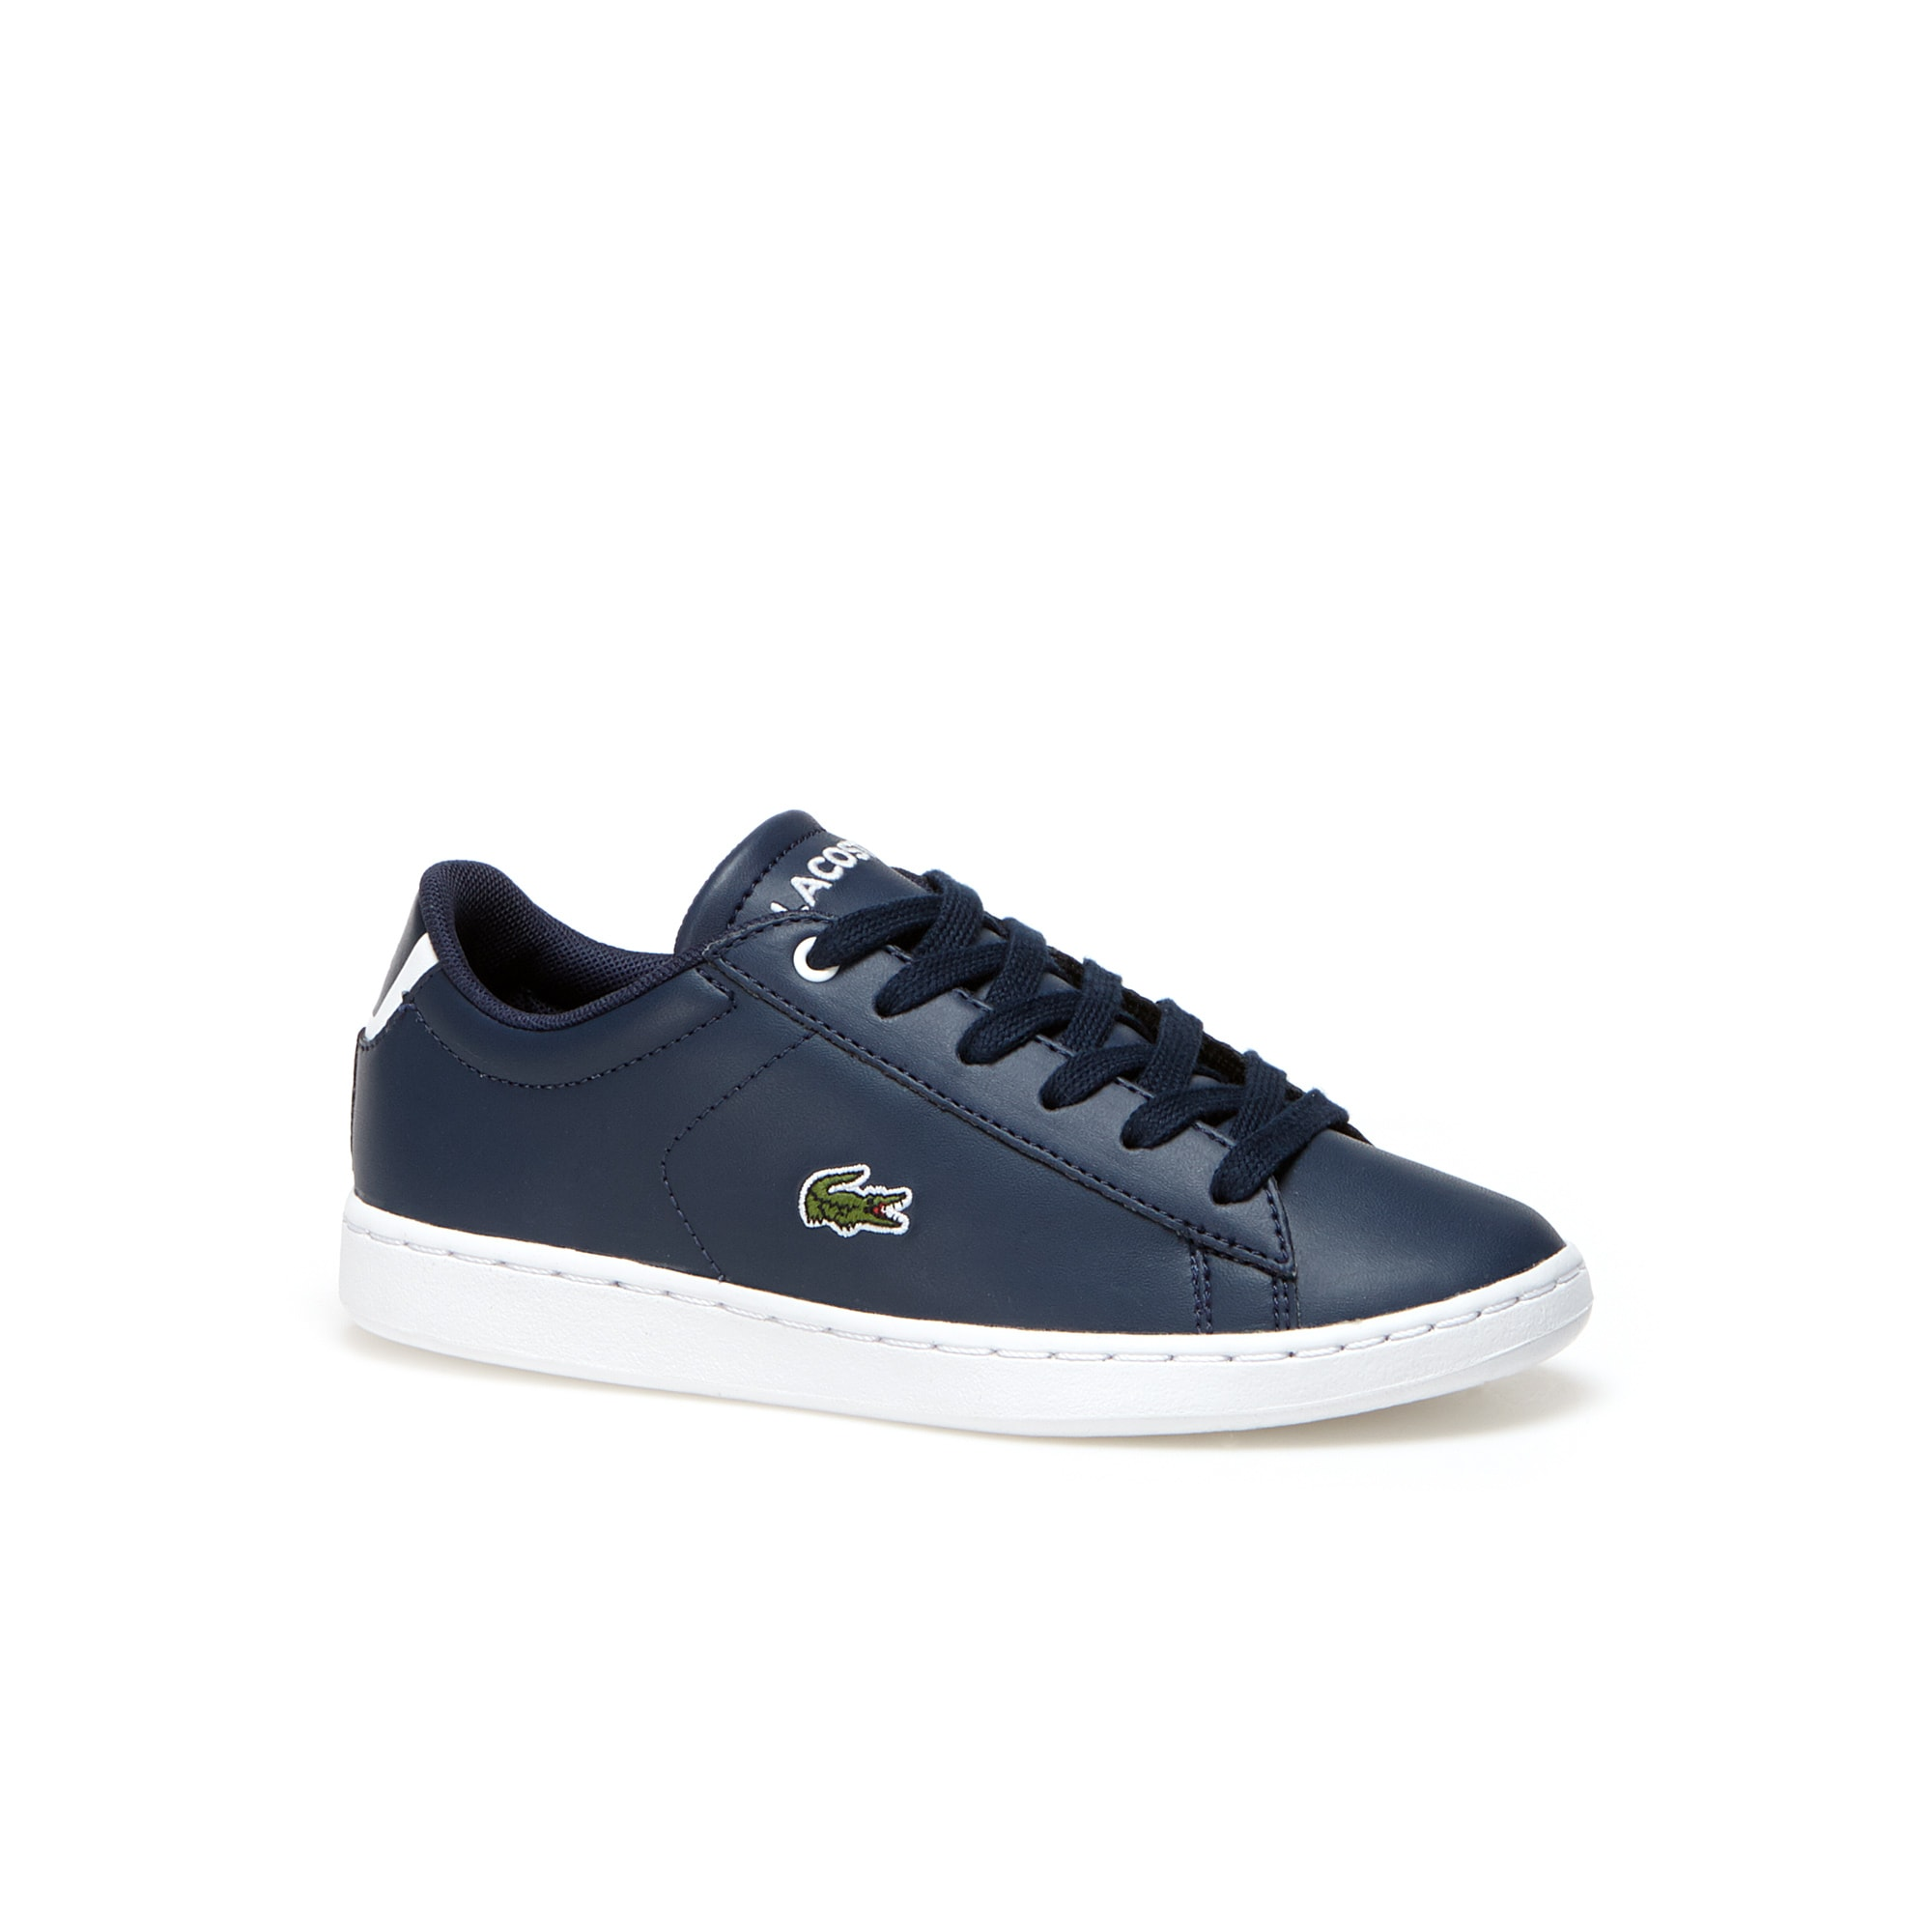 Lacoste Lacoste Chaussures Chaussures GarçonEnfant Lacoste Lacoste GarçonEnfant Chaussures Chaussures Chaussures GarçonEnfant Chaussures Lacoste GarçonEnfant GarçonEnfant SpzGqMVU